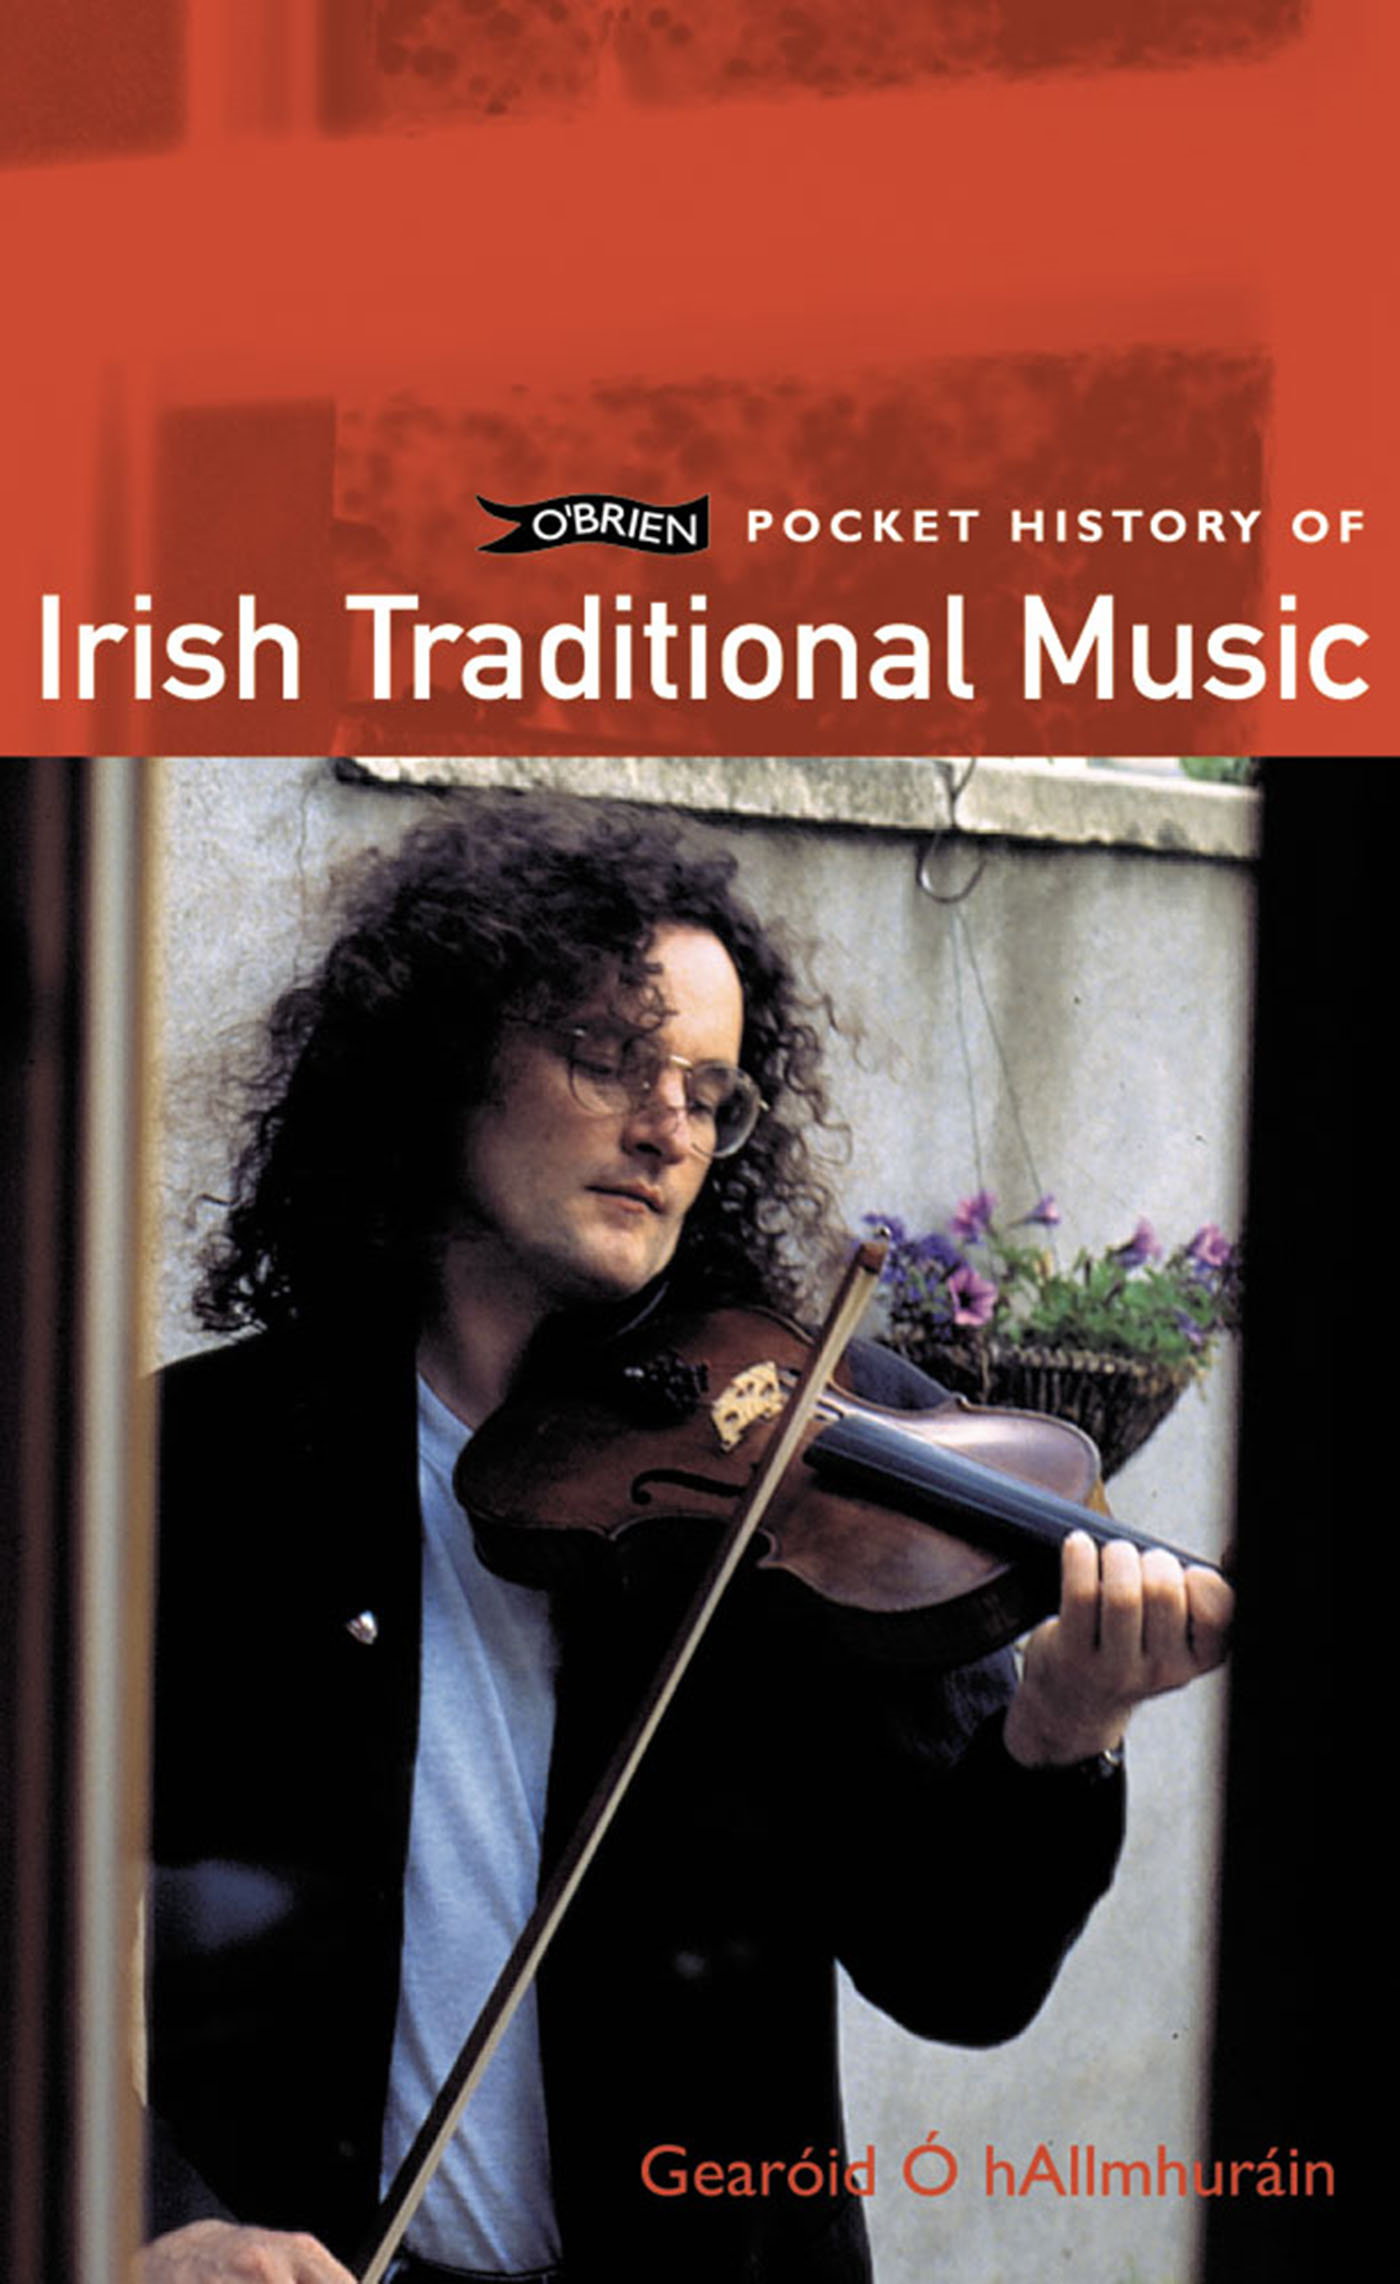 O'Brien Pocket History of Irish Traditional Music